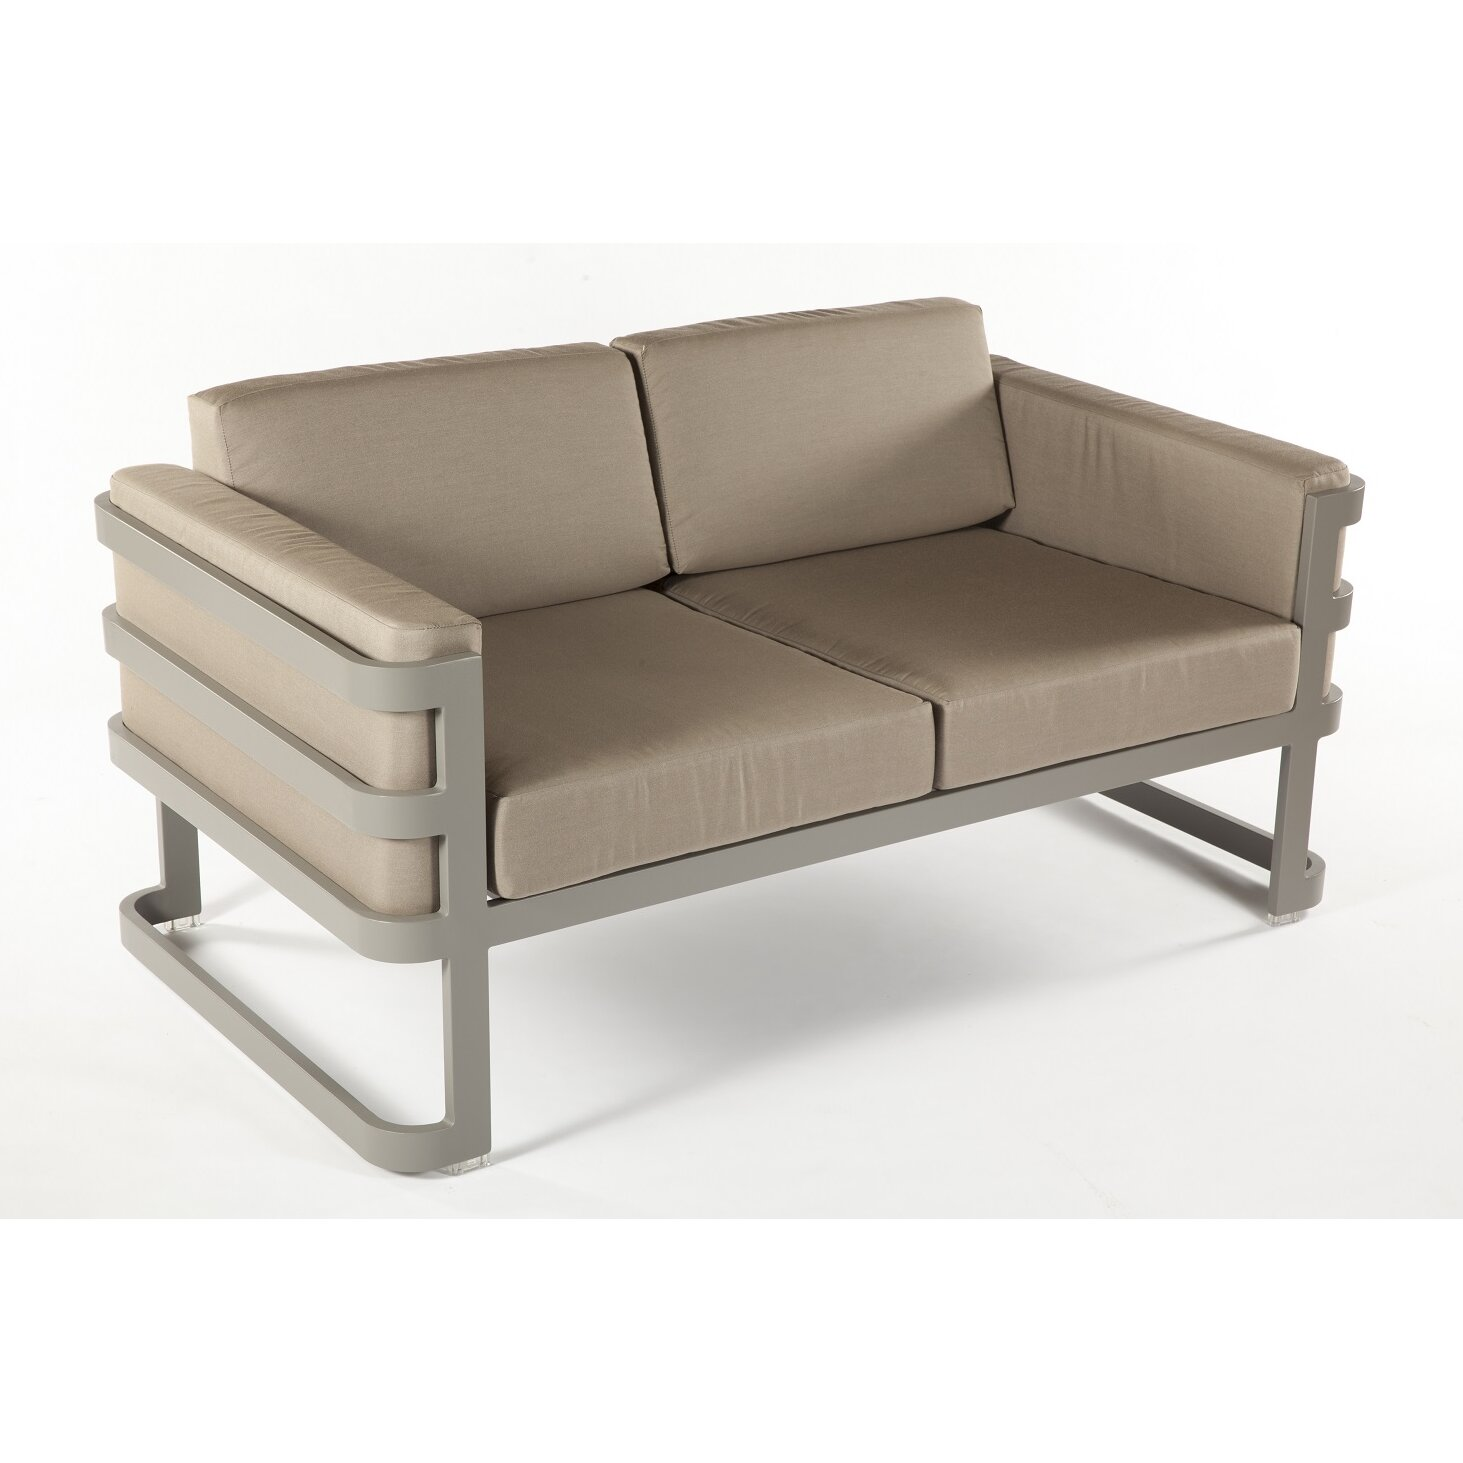 Patras Outdoor Loveseat with Beige Cushions